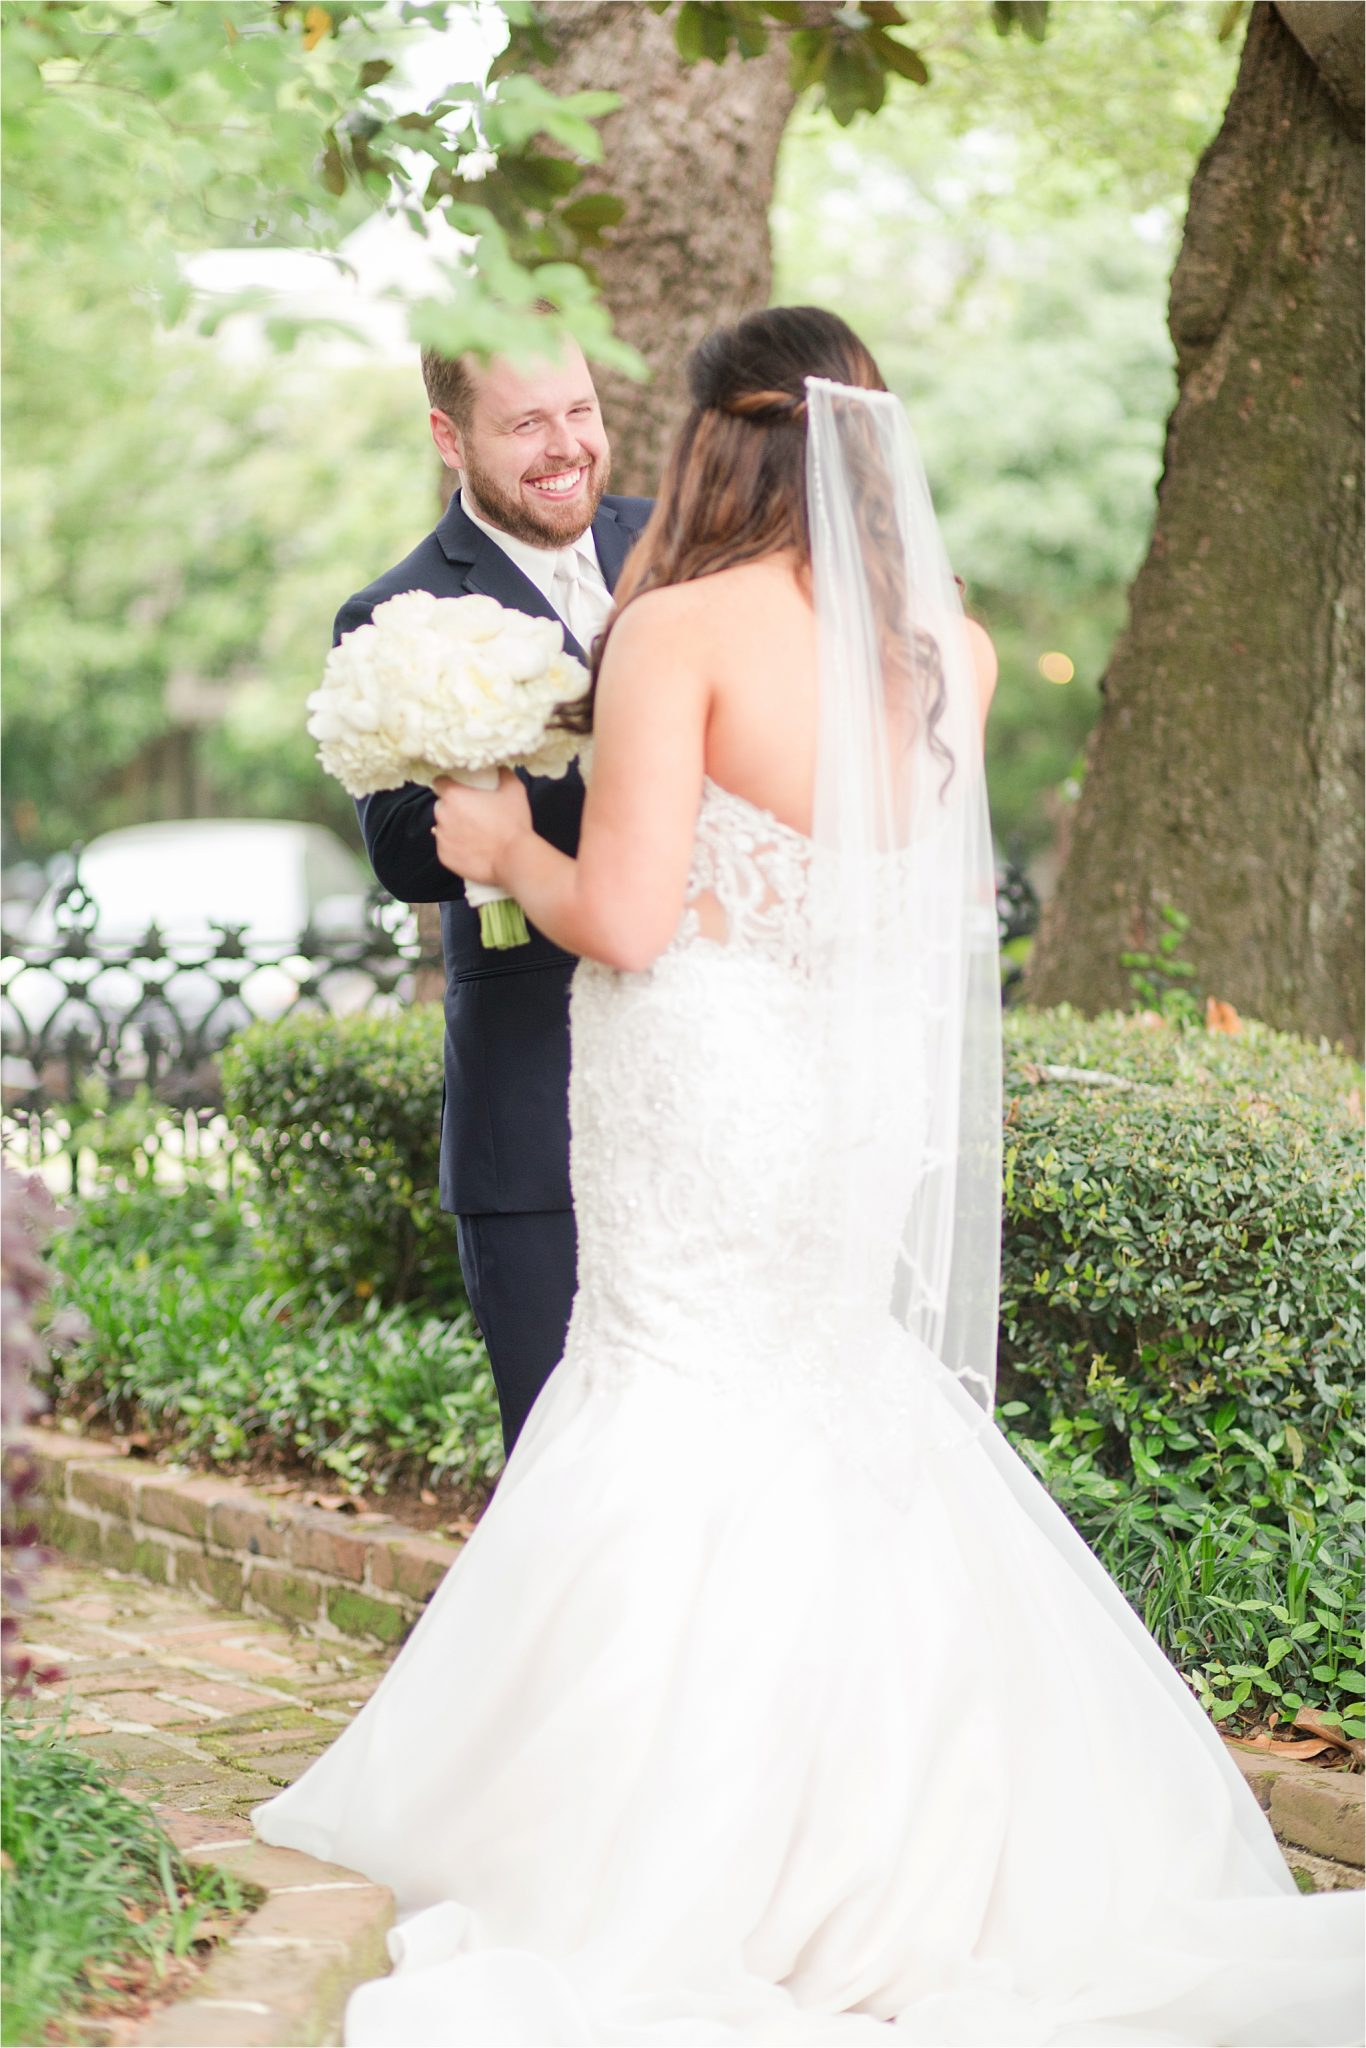 first look-bride and groom-mermaid dress-wedding moments-